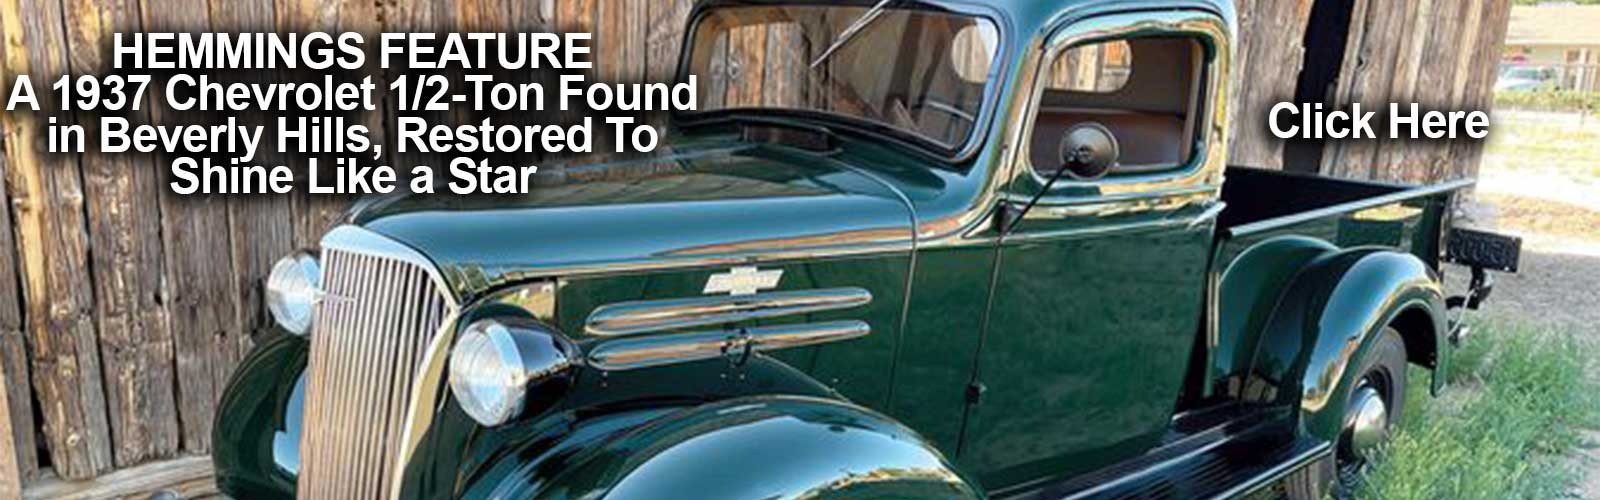 Street Trucks Link to Article